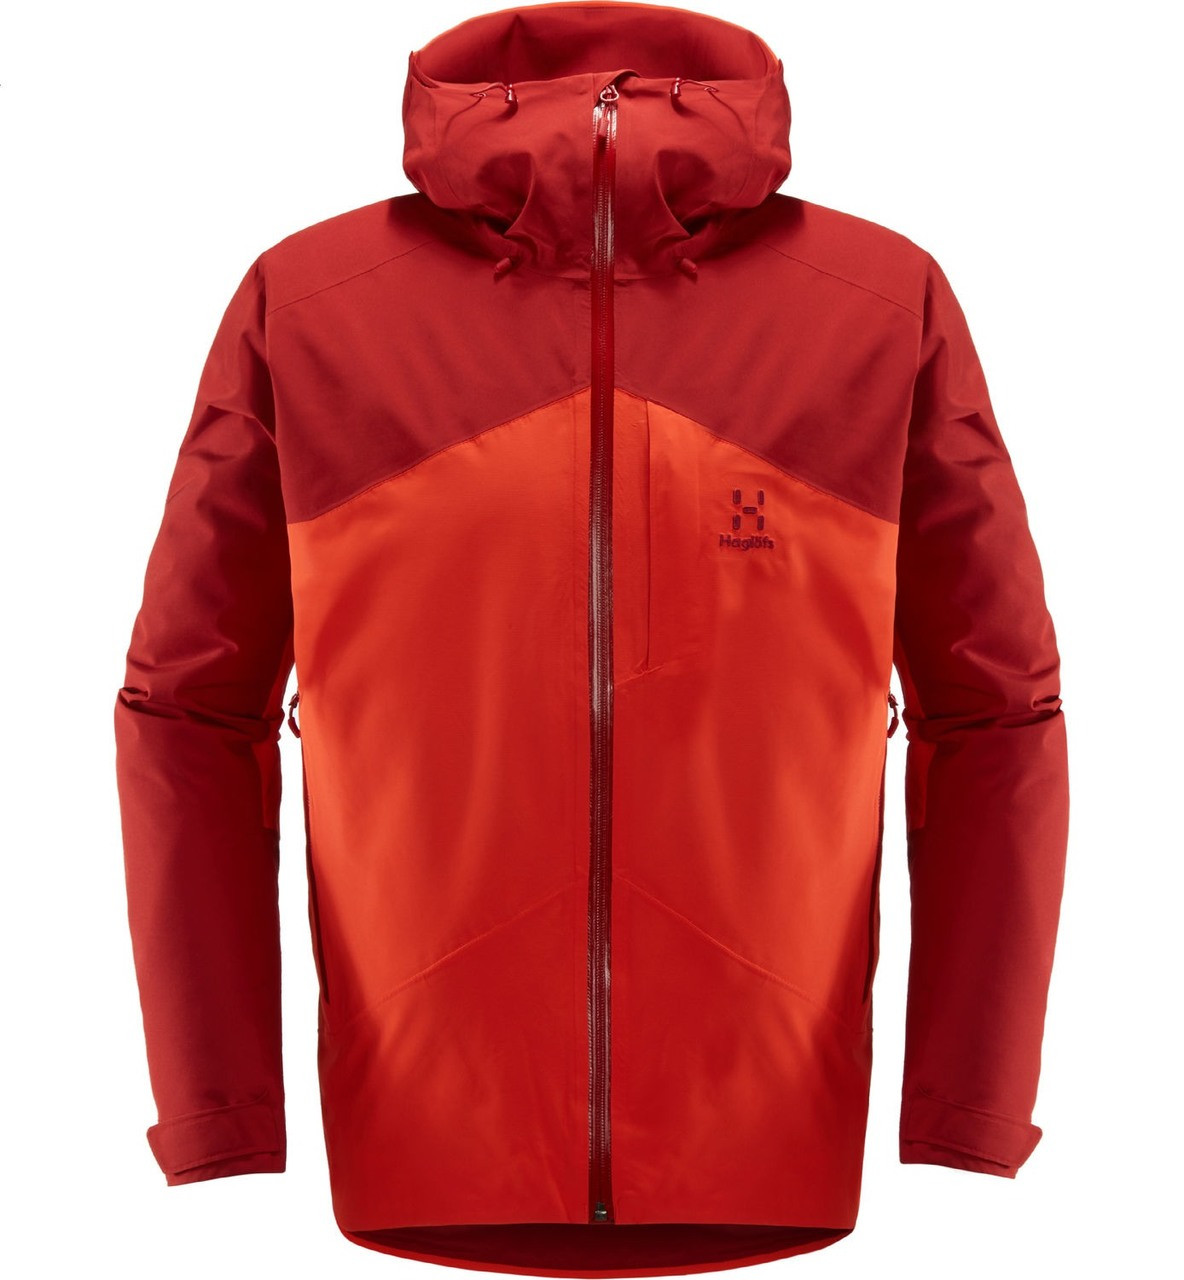 haglofs niva insulated jacket men's ski jacket in rubin habanero front view